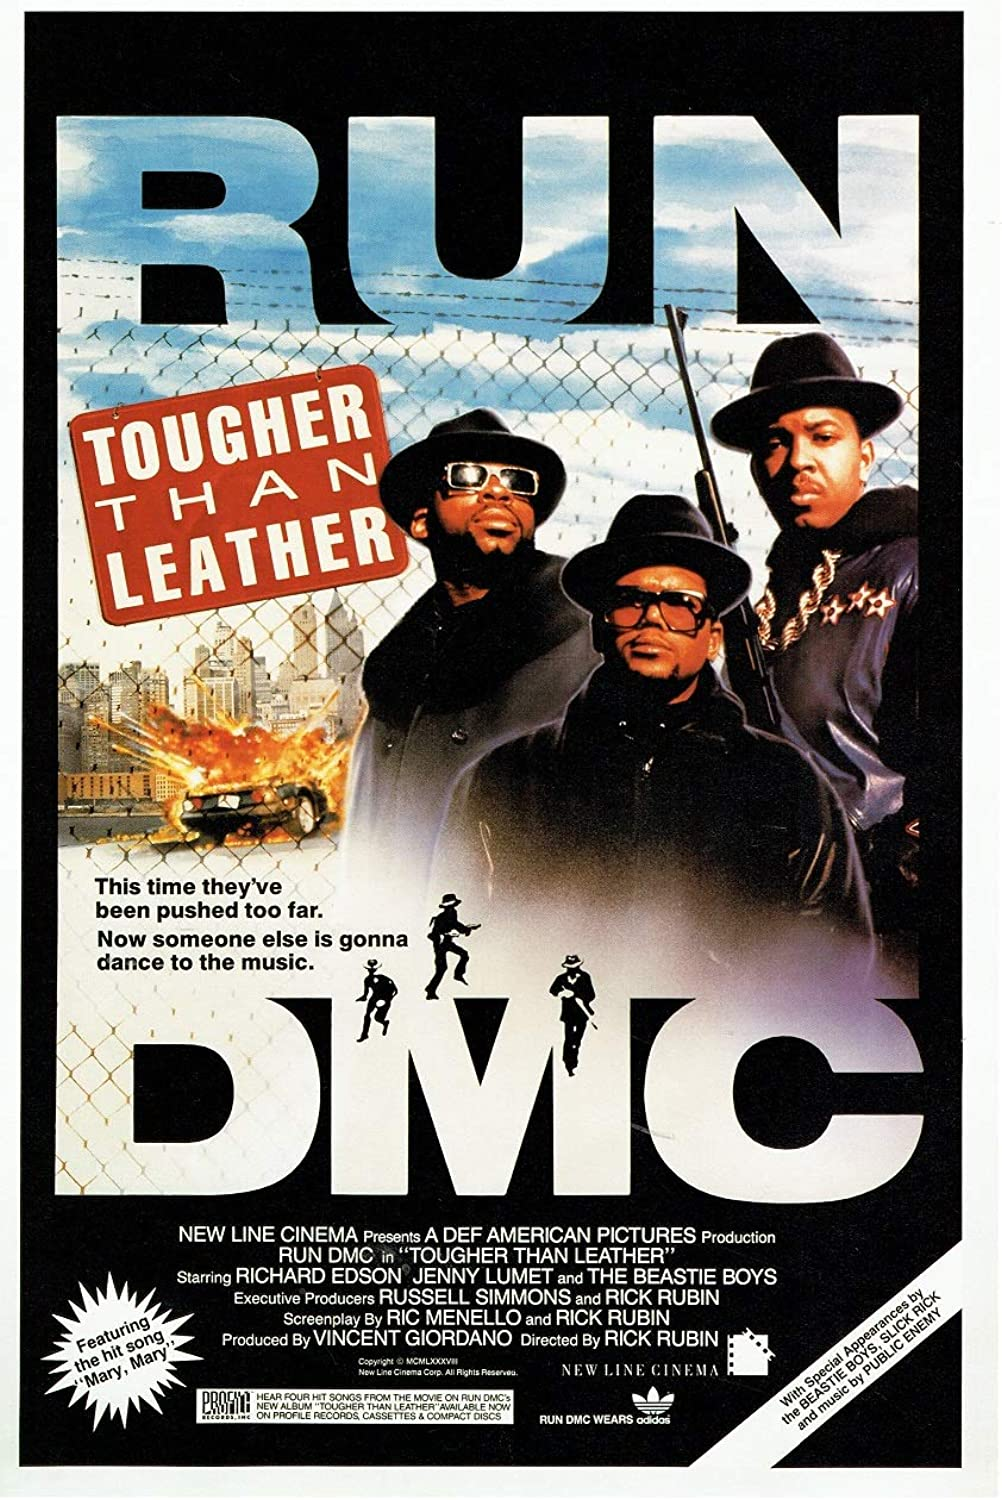 Black Creations Tougher Than Leather US 1986 Film Poster Canvas Picture Art Print Premium Quality A0 A1 A2 A3 A4 (A0 Canvas (30 40))